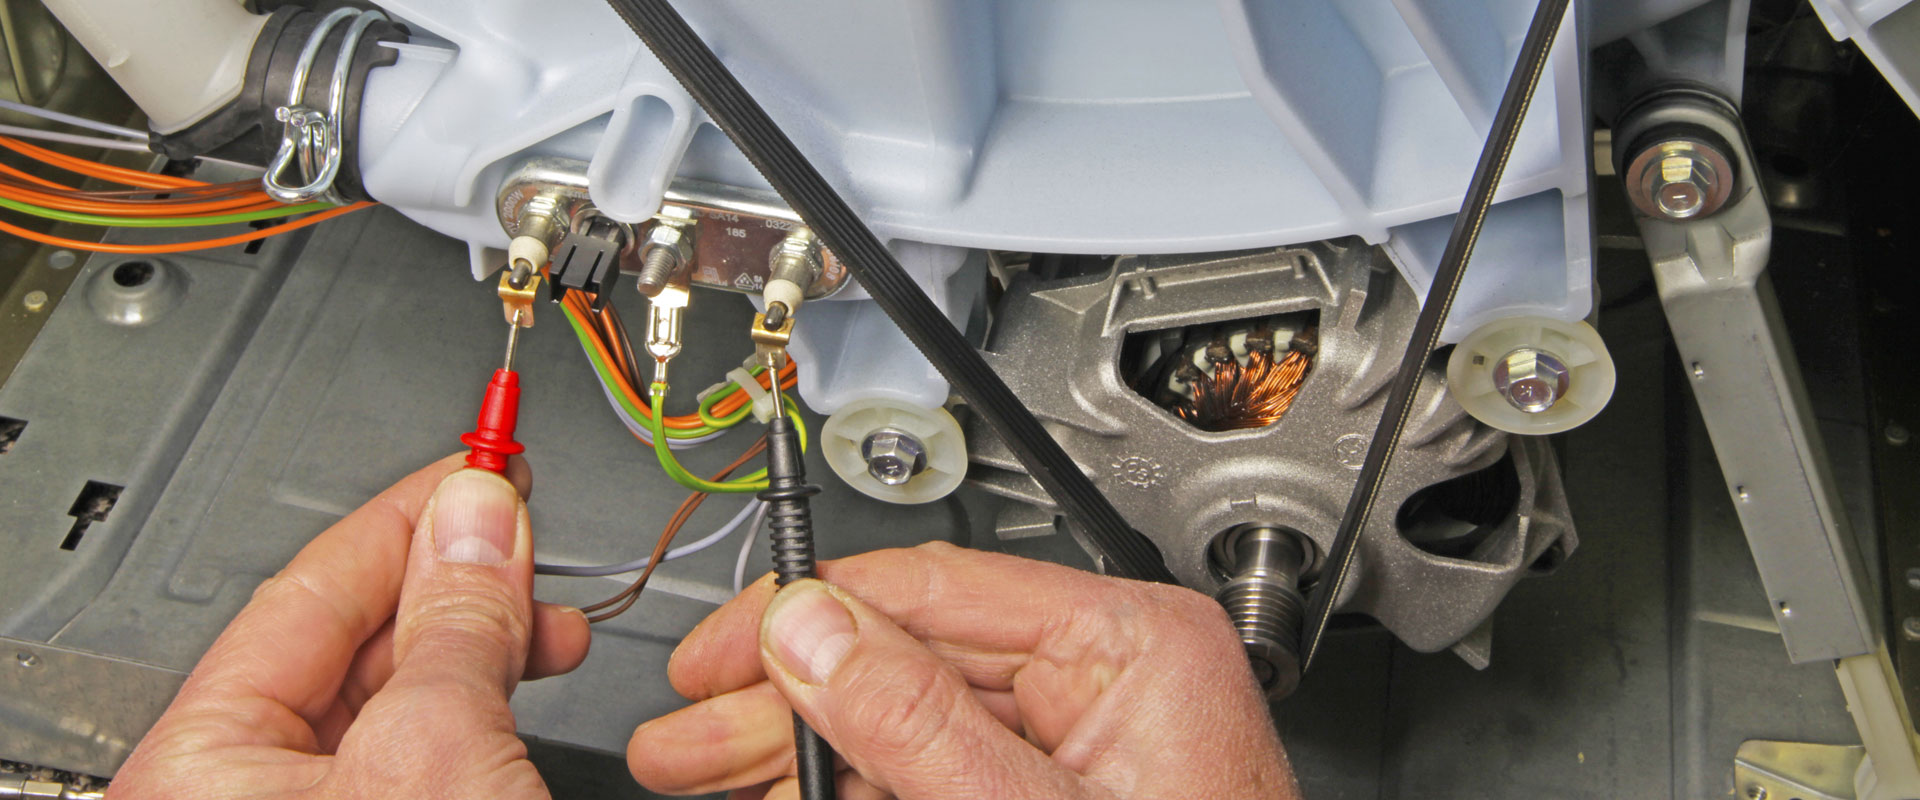 Central One Service, Little Rock Appliance Repair